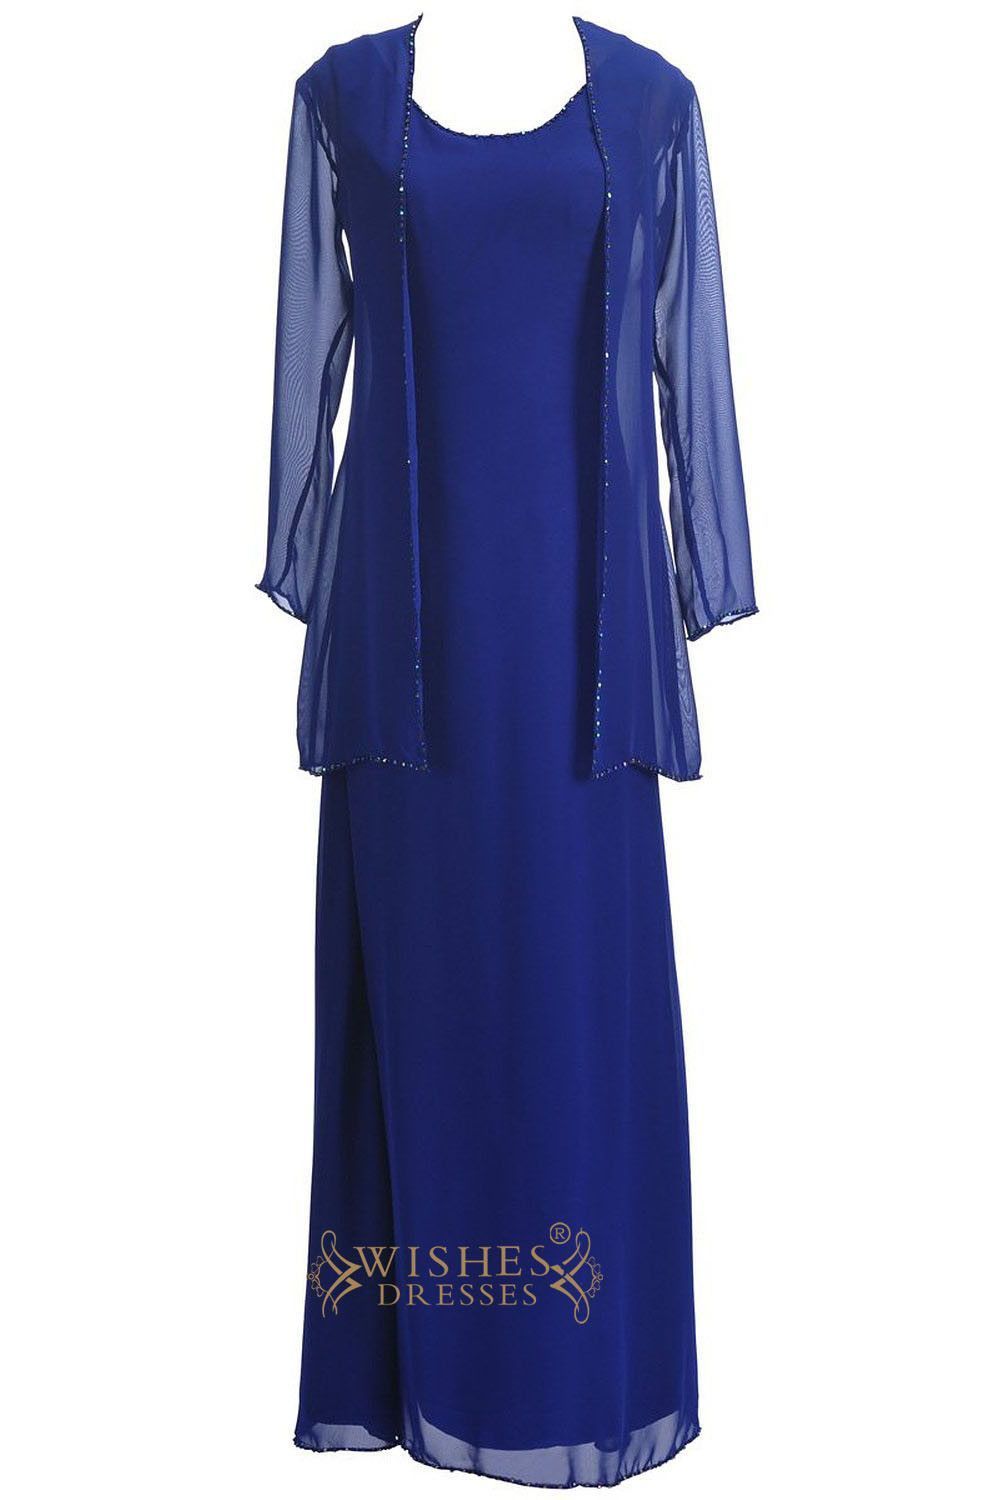 Aline royal blue chiffon mother of the bride dress with jacket